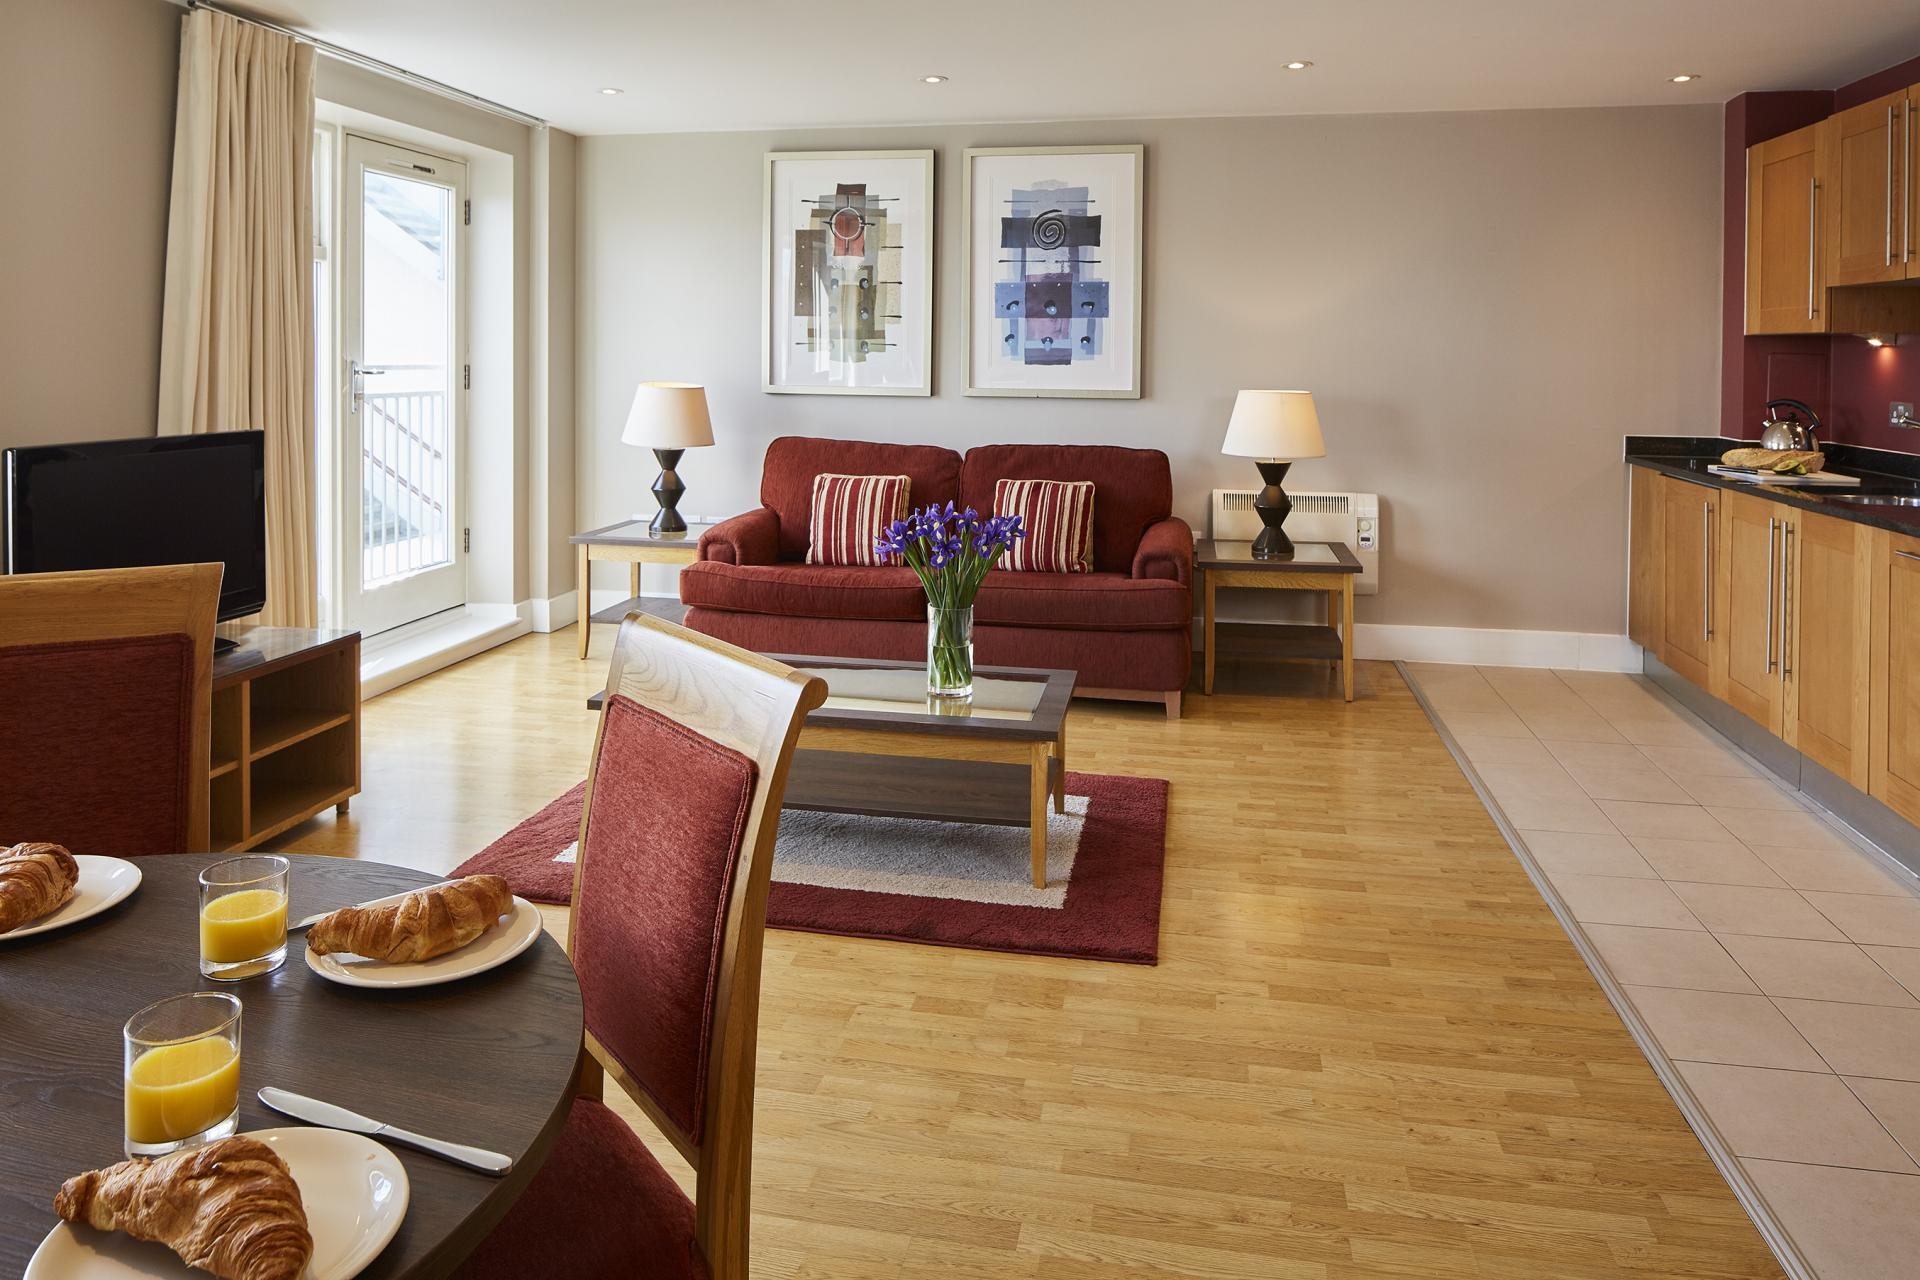 Living area at Limehouse Apartments, Limehouse, London